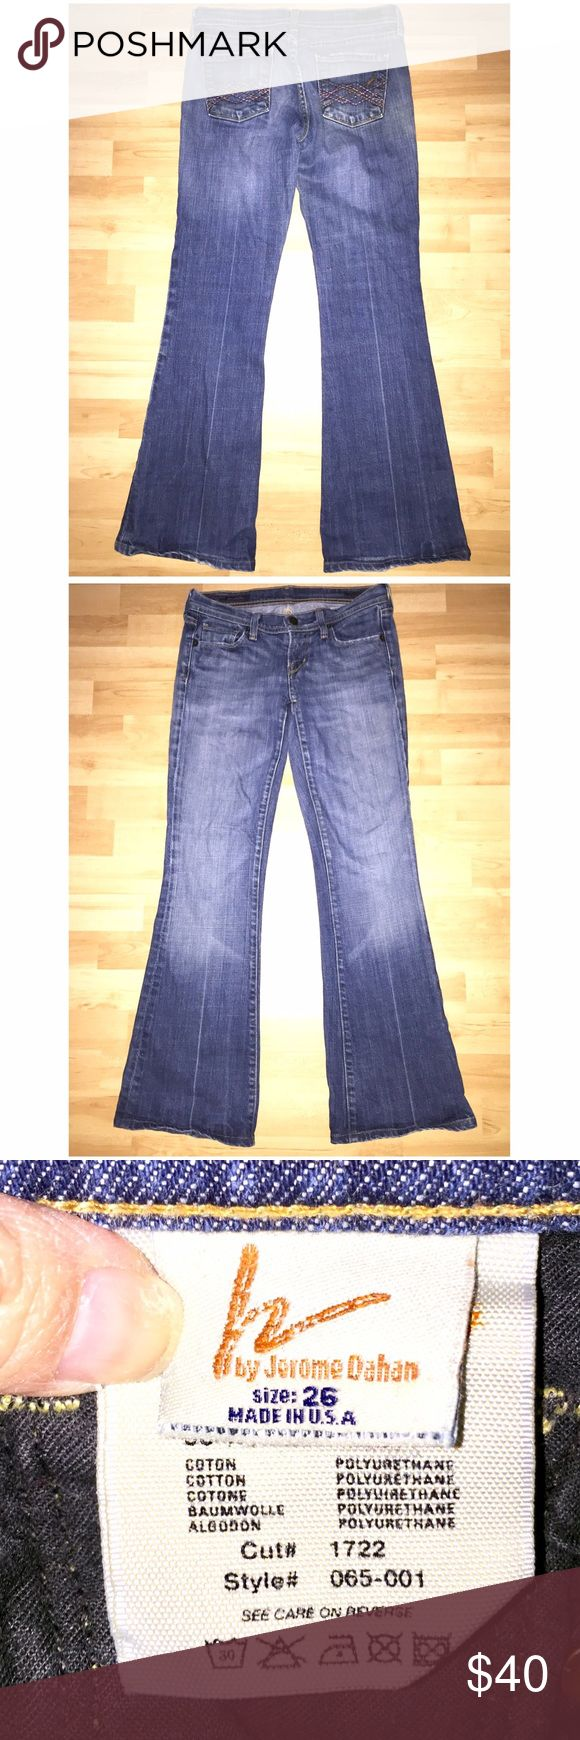 "👖JEANS SALE👖Citizens of Humanity Jeans Citizens of Humanity Jeans in size 26 with a 29"" inseam come in preloved and VERY GOOD condition! Low rise, dark was and boot cut. Super trendy! My prices fluctuate from time to time. Catch items when the prices are low!❤️ Citizens of Humanity Jeans Boot Cut"